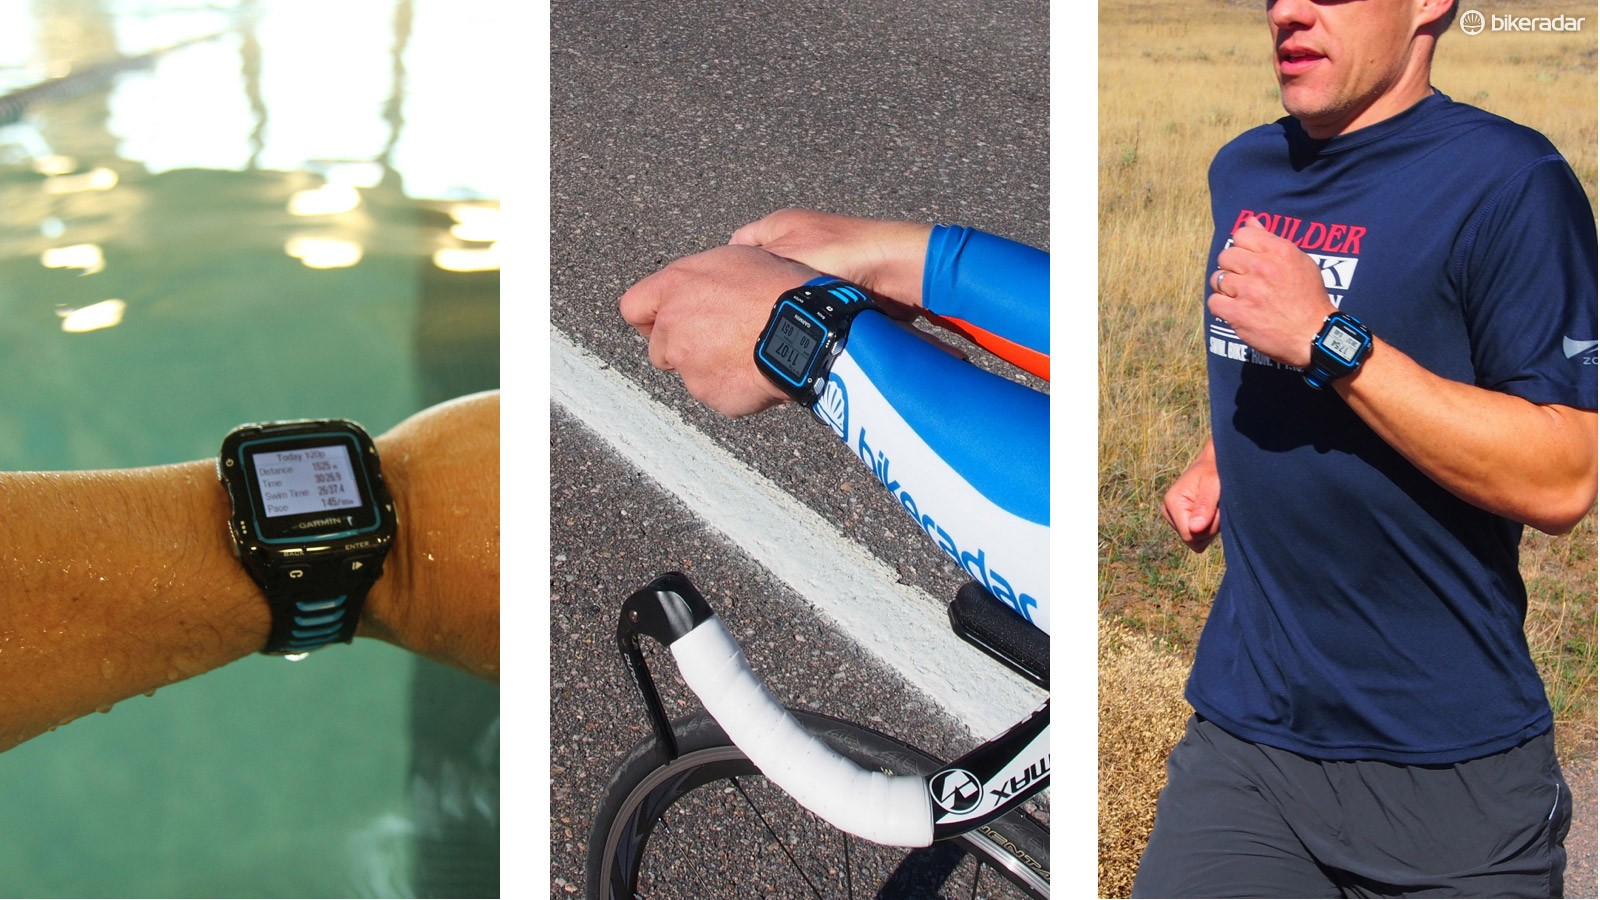 The Garmin Forerunner 920XT is the latest triathlon watch from the GPS giant